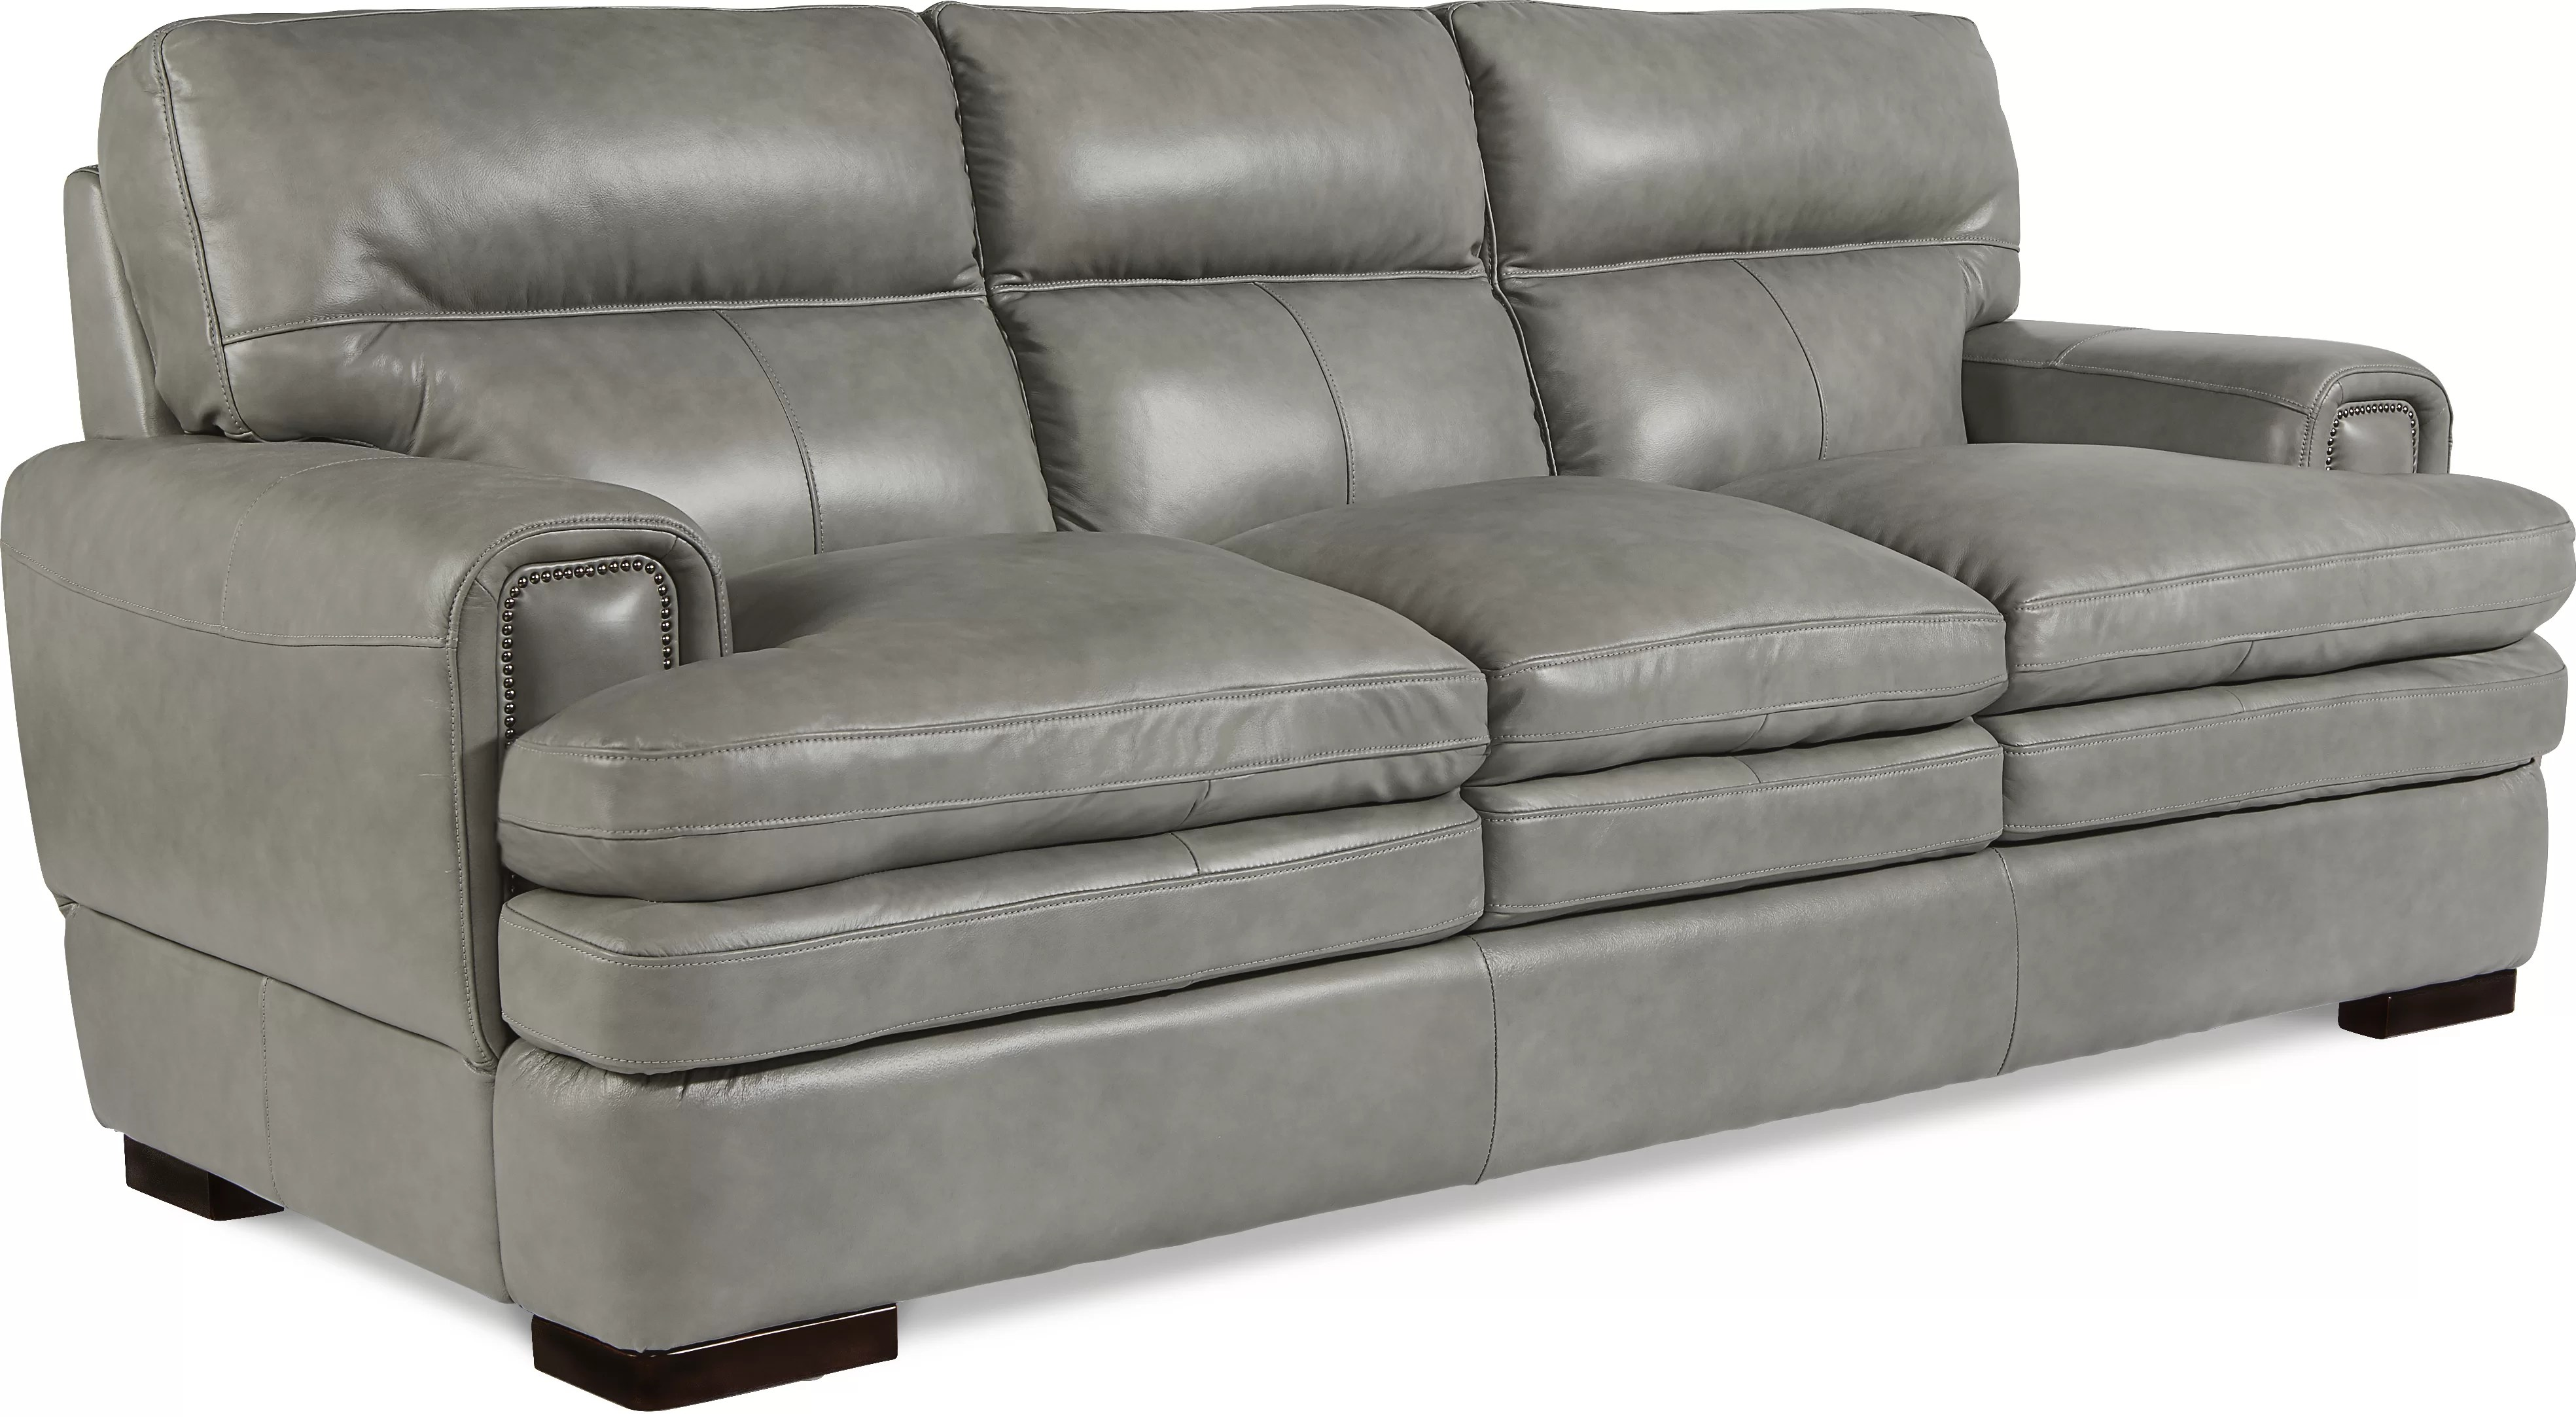 leather sofa repair kit canadian tire bed london showroom la z boy recliner baci living room